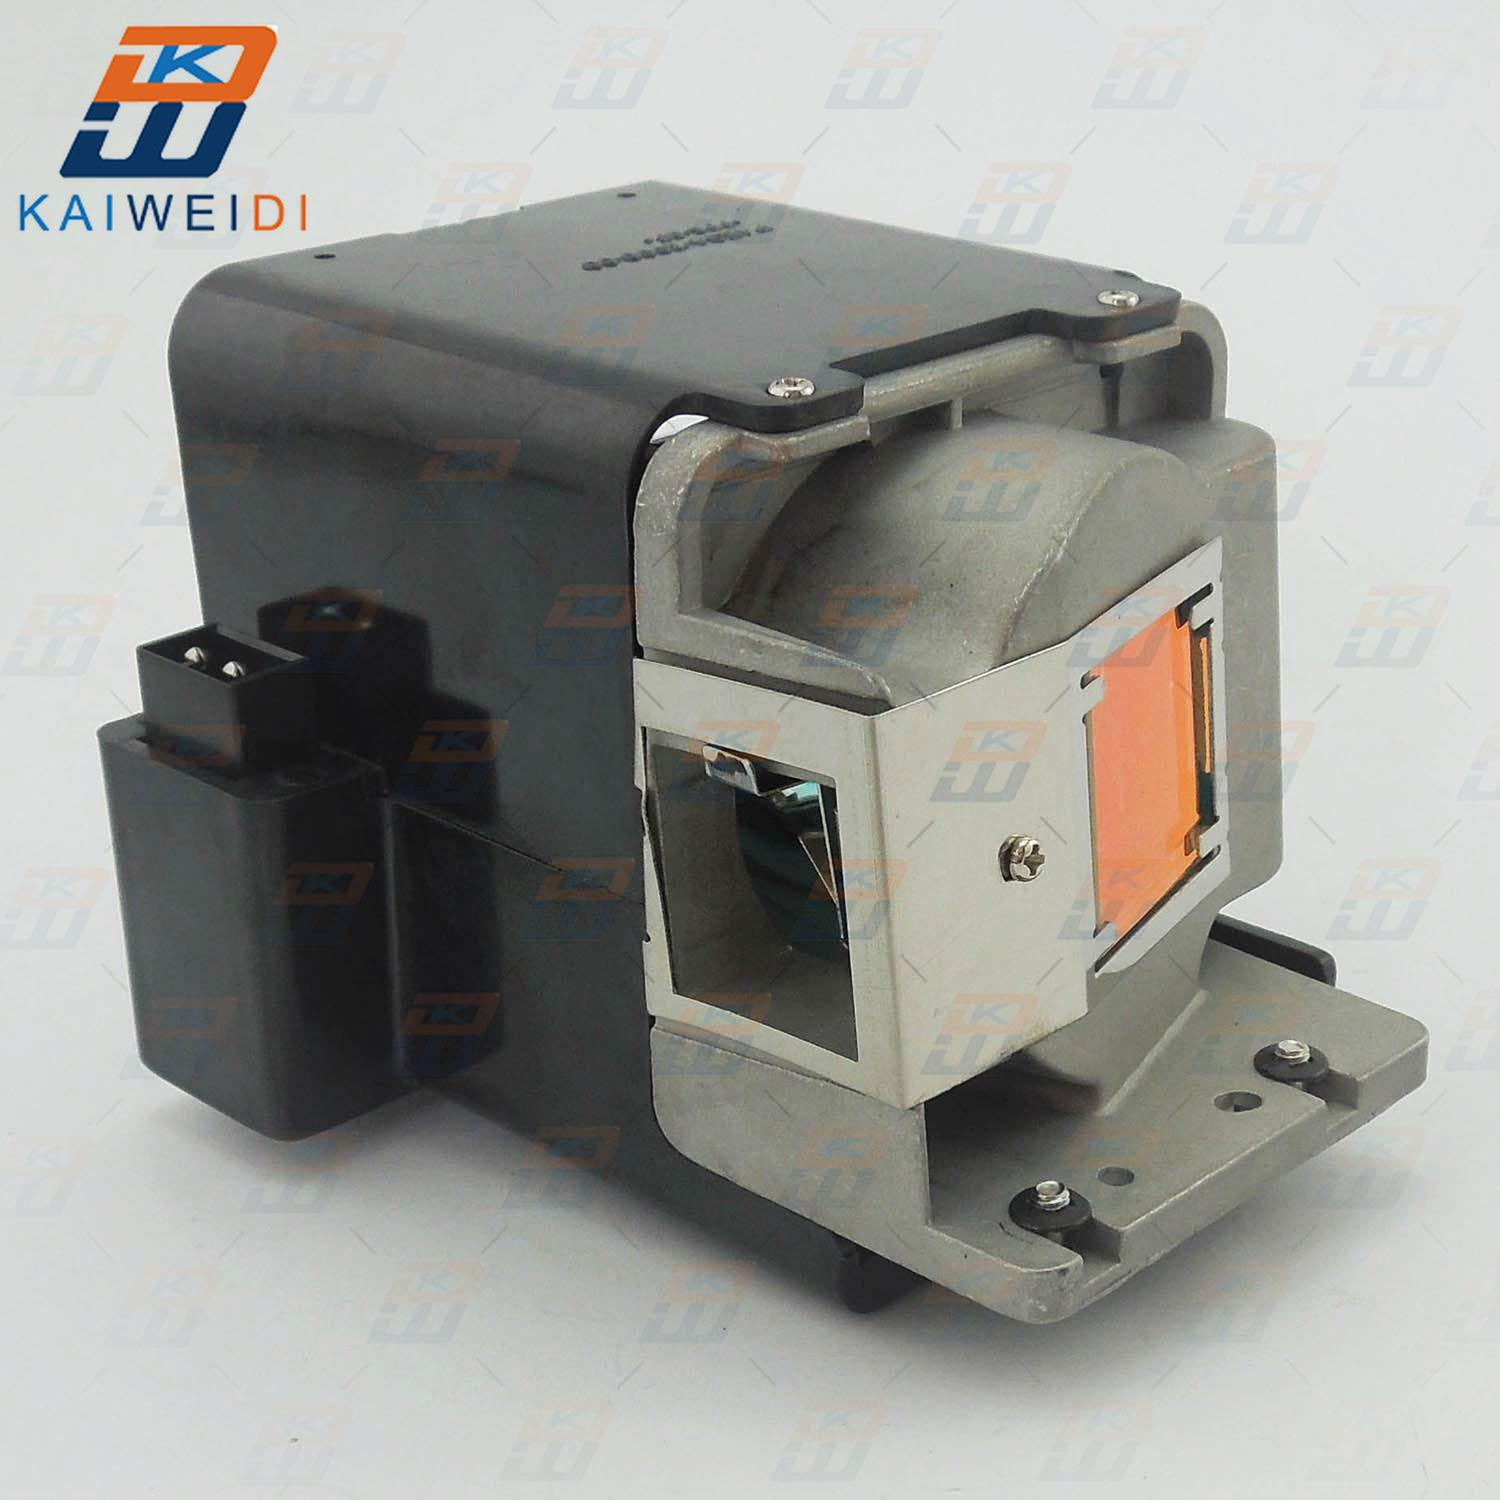 5J.J3S05.001 MS510 MX511 MW512 EP4127C EP4227C EP4328C High Quality Projector Lamp With Housing For Benq Projectors